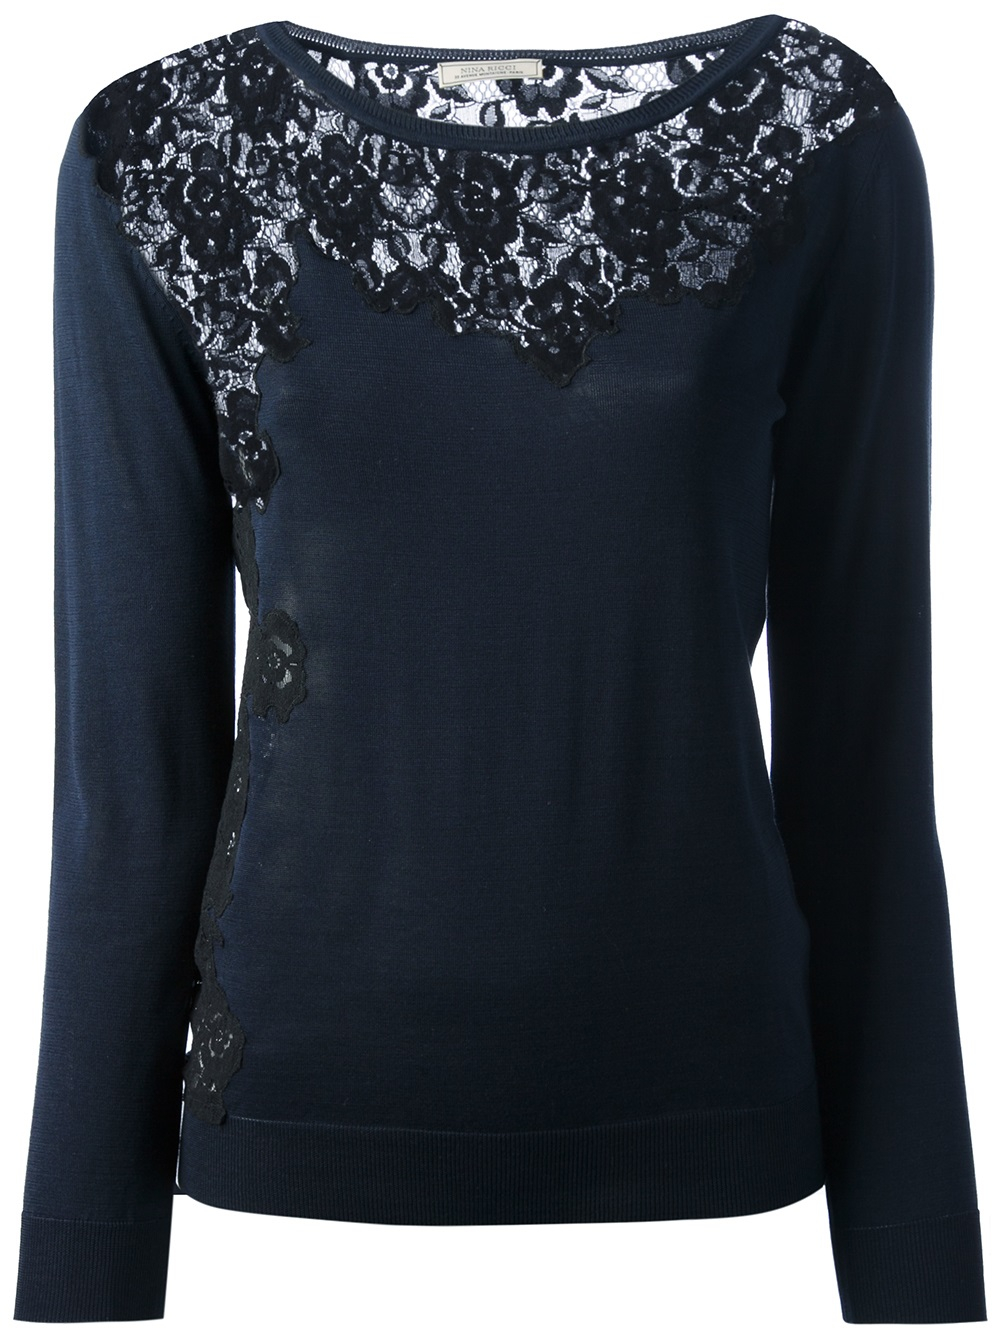 Nina ricci Lace Panel Sweater in Blue | Lyst